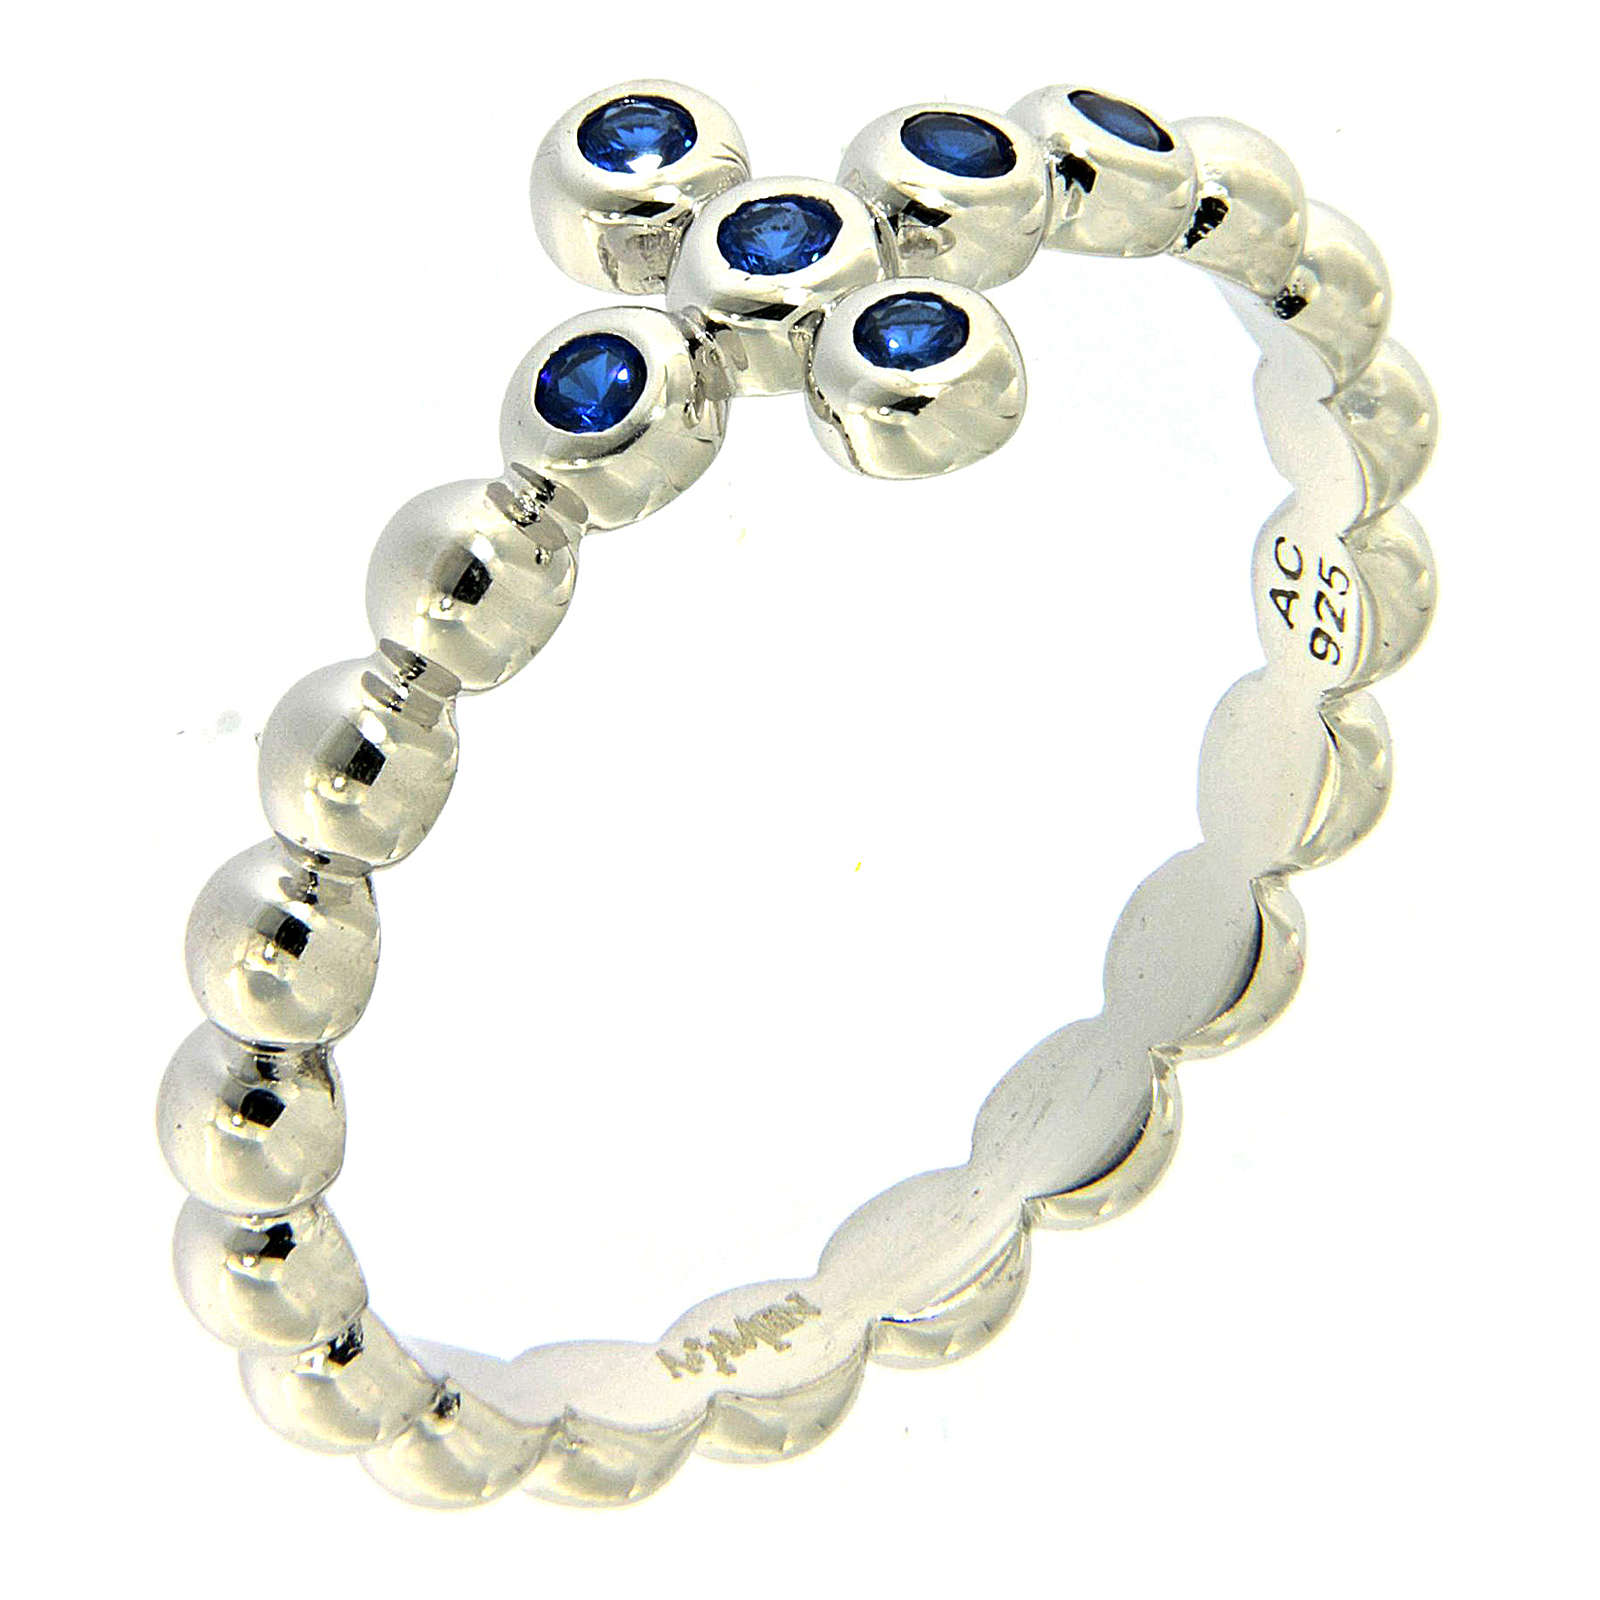 AMEN Beads Ring White silver 925, blue zircons 3